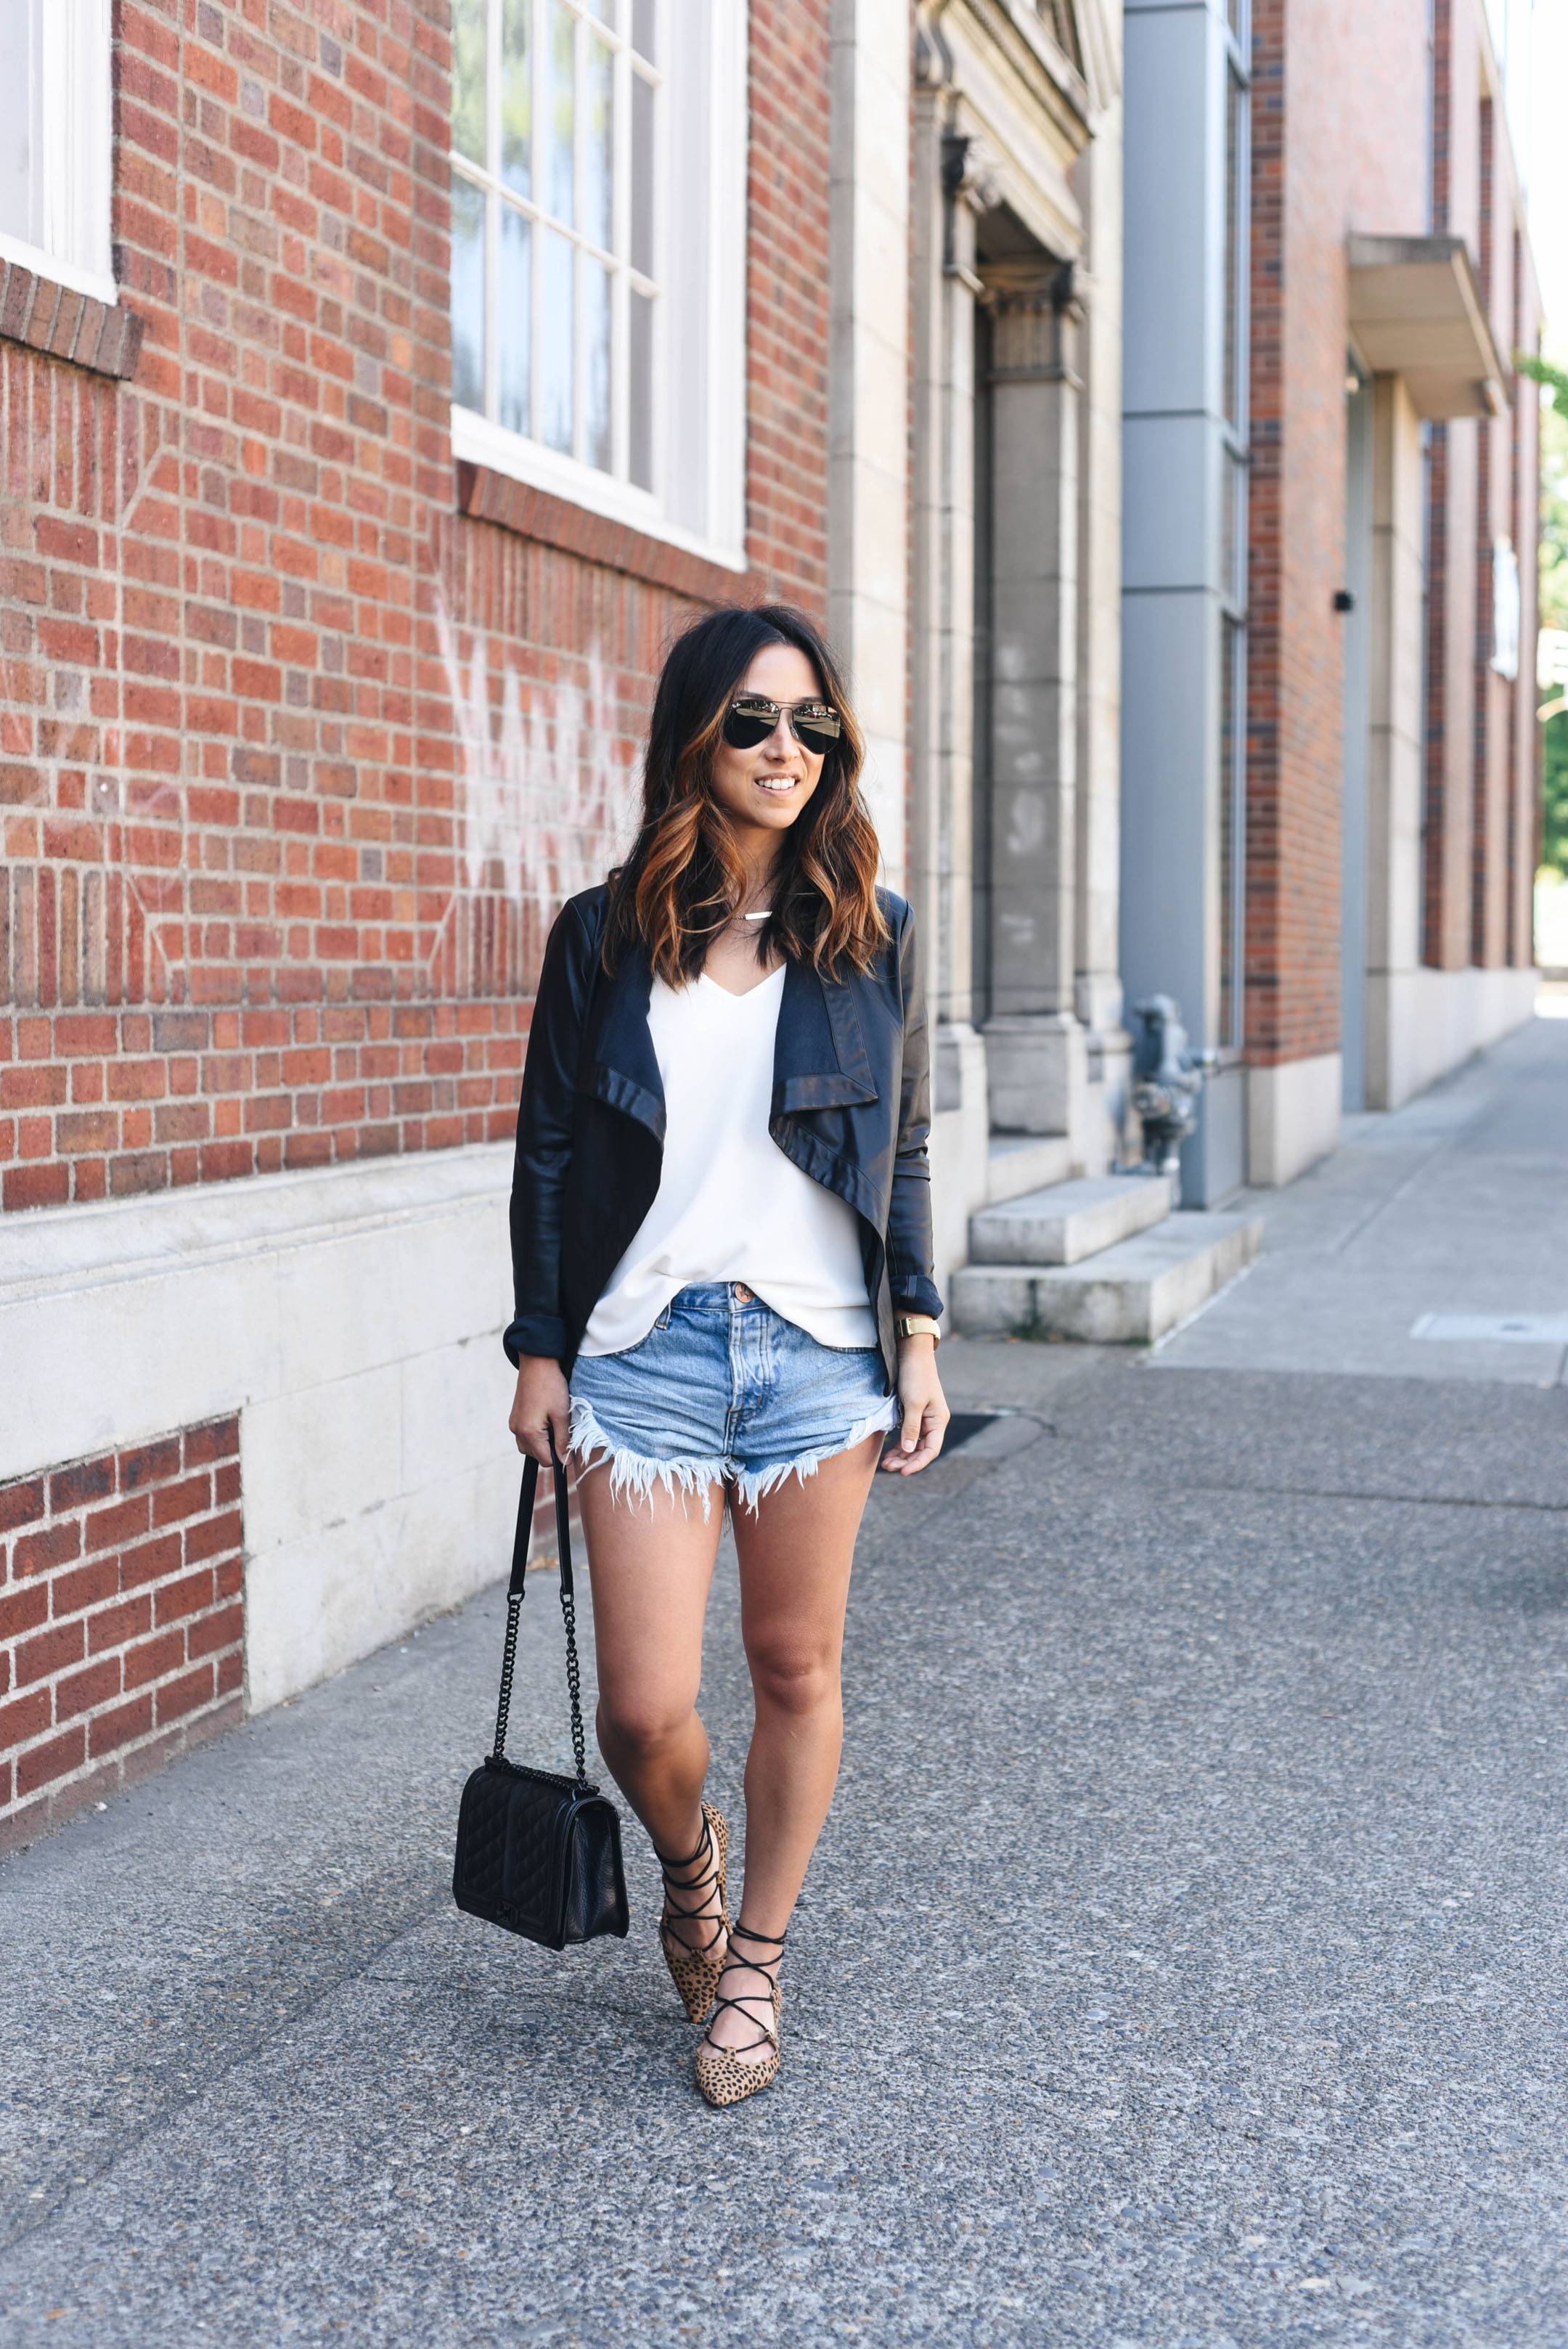 Leather jacket and denim cutoffs